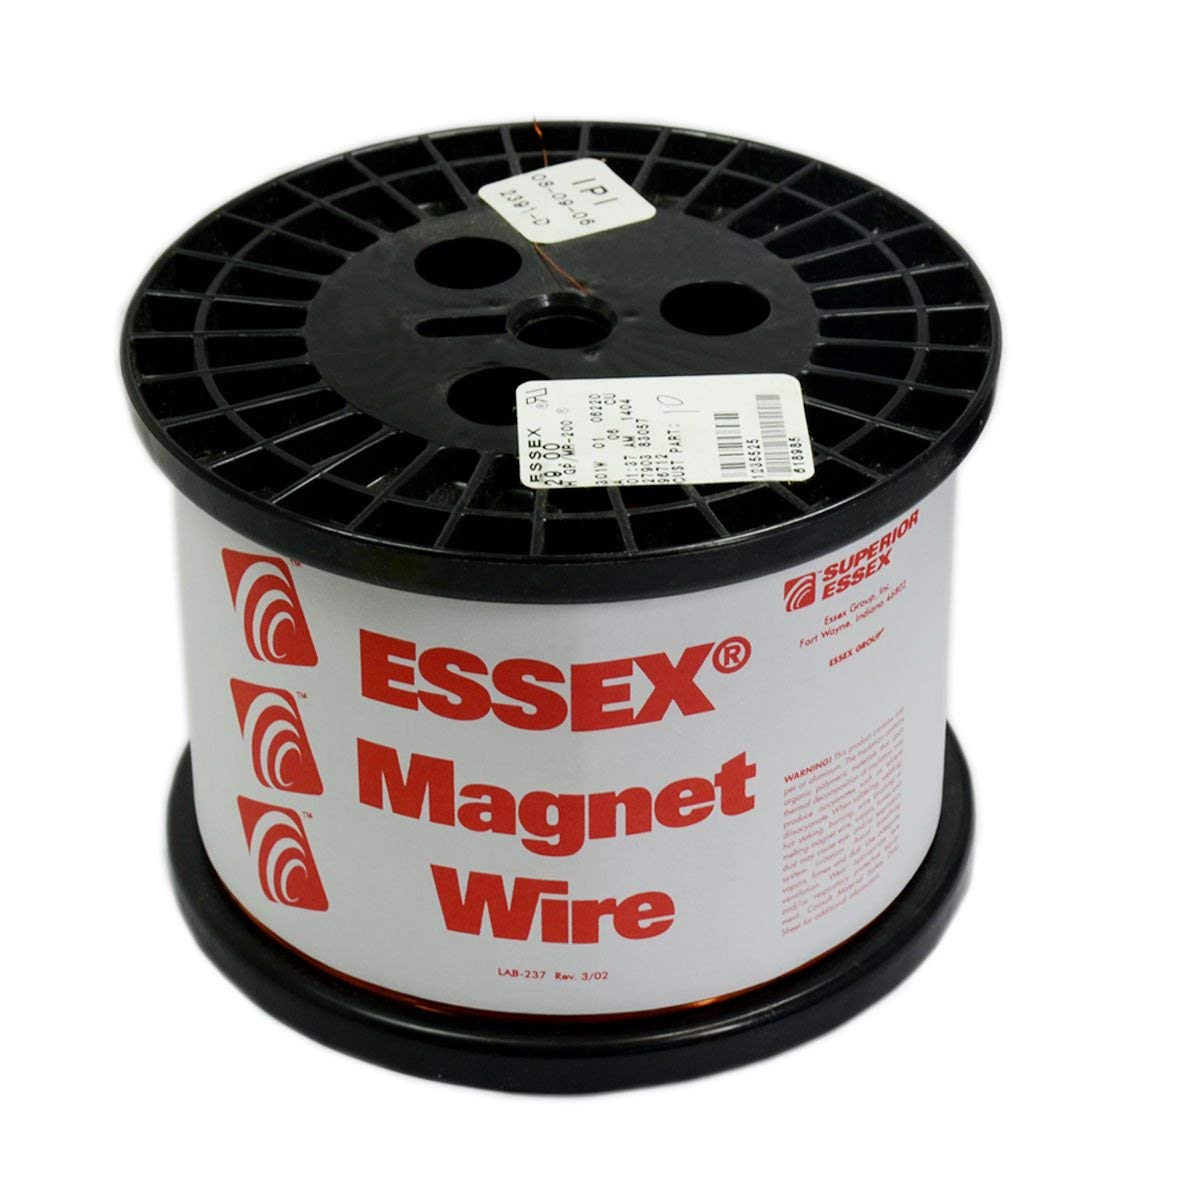 Essex Magnet Wire Enameled Heavy Build 20 AWG HTAIH GP/MR-200 10 LB Spool Research Industrial Applications and Personal Projects